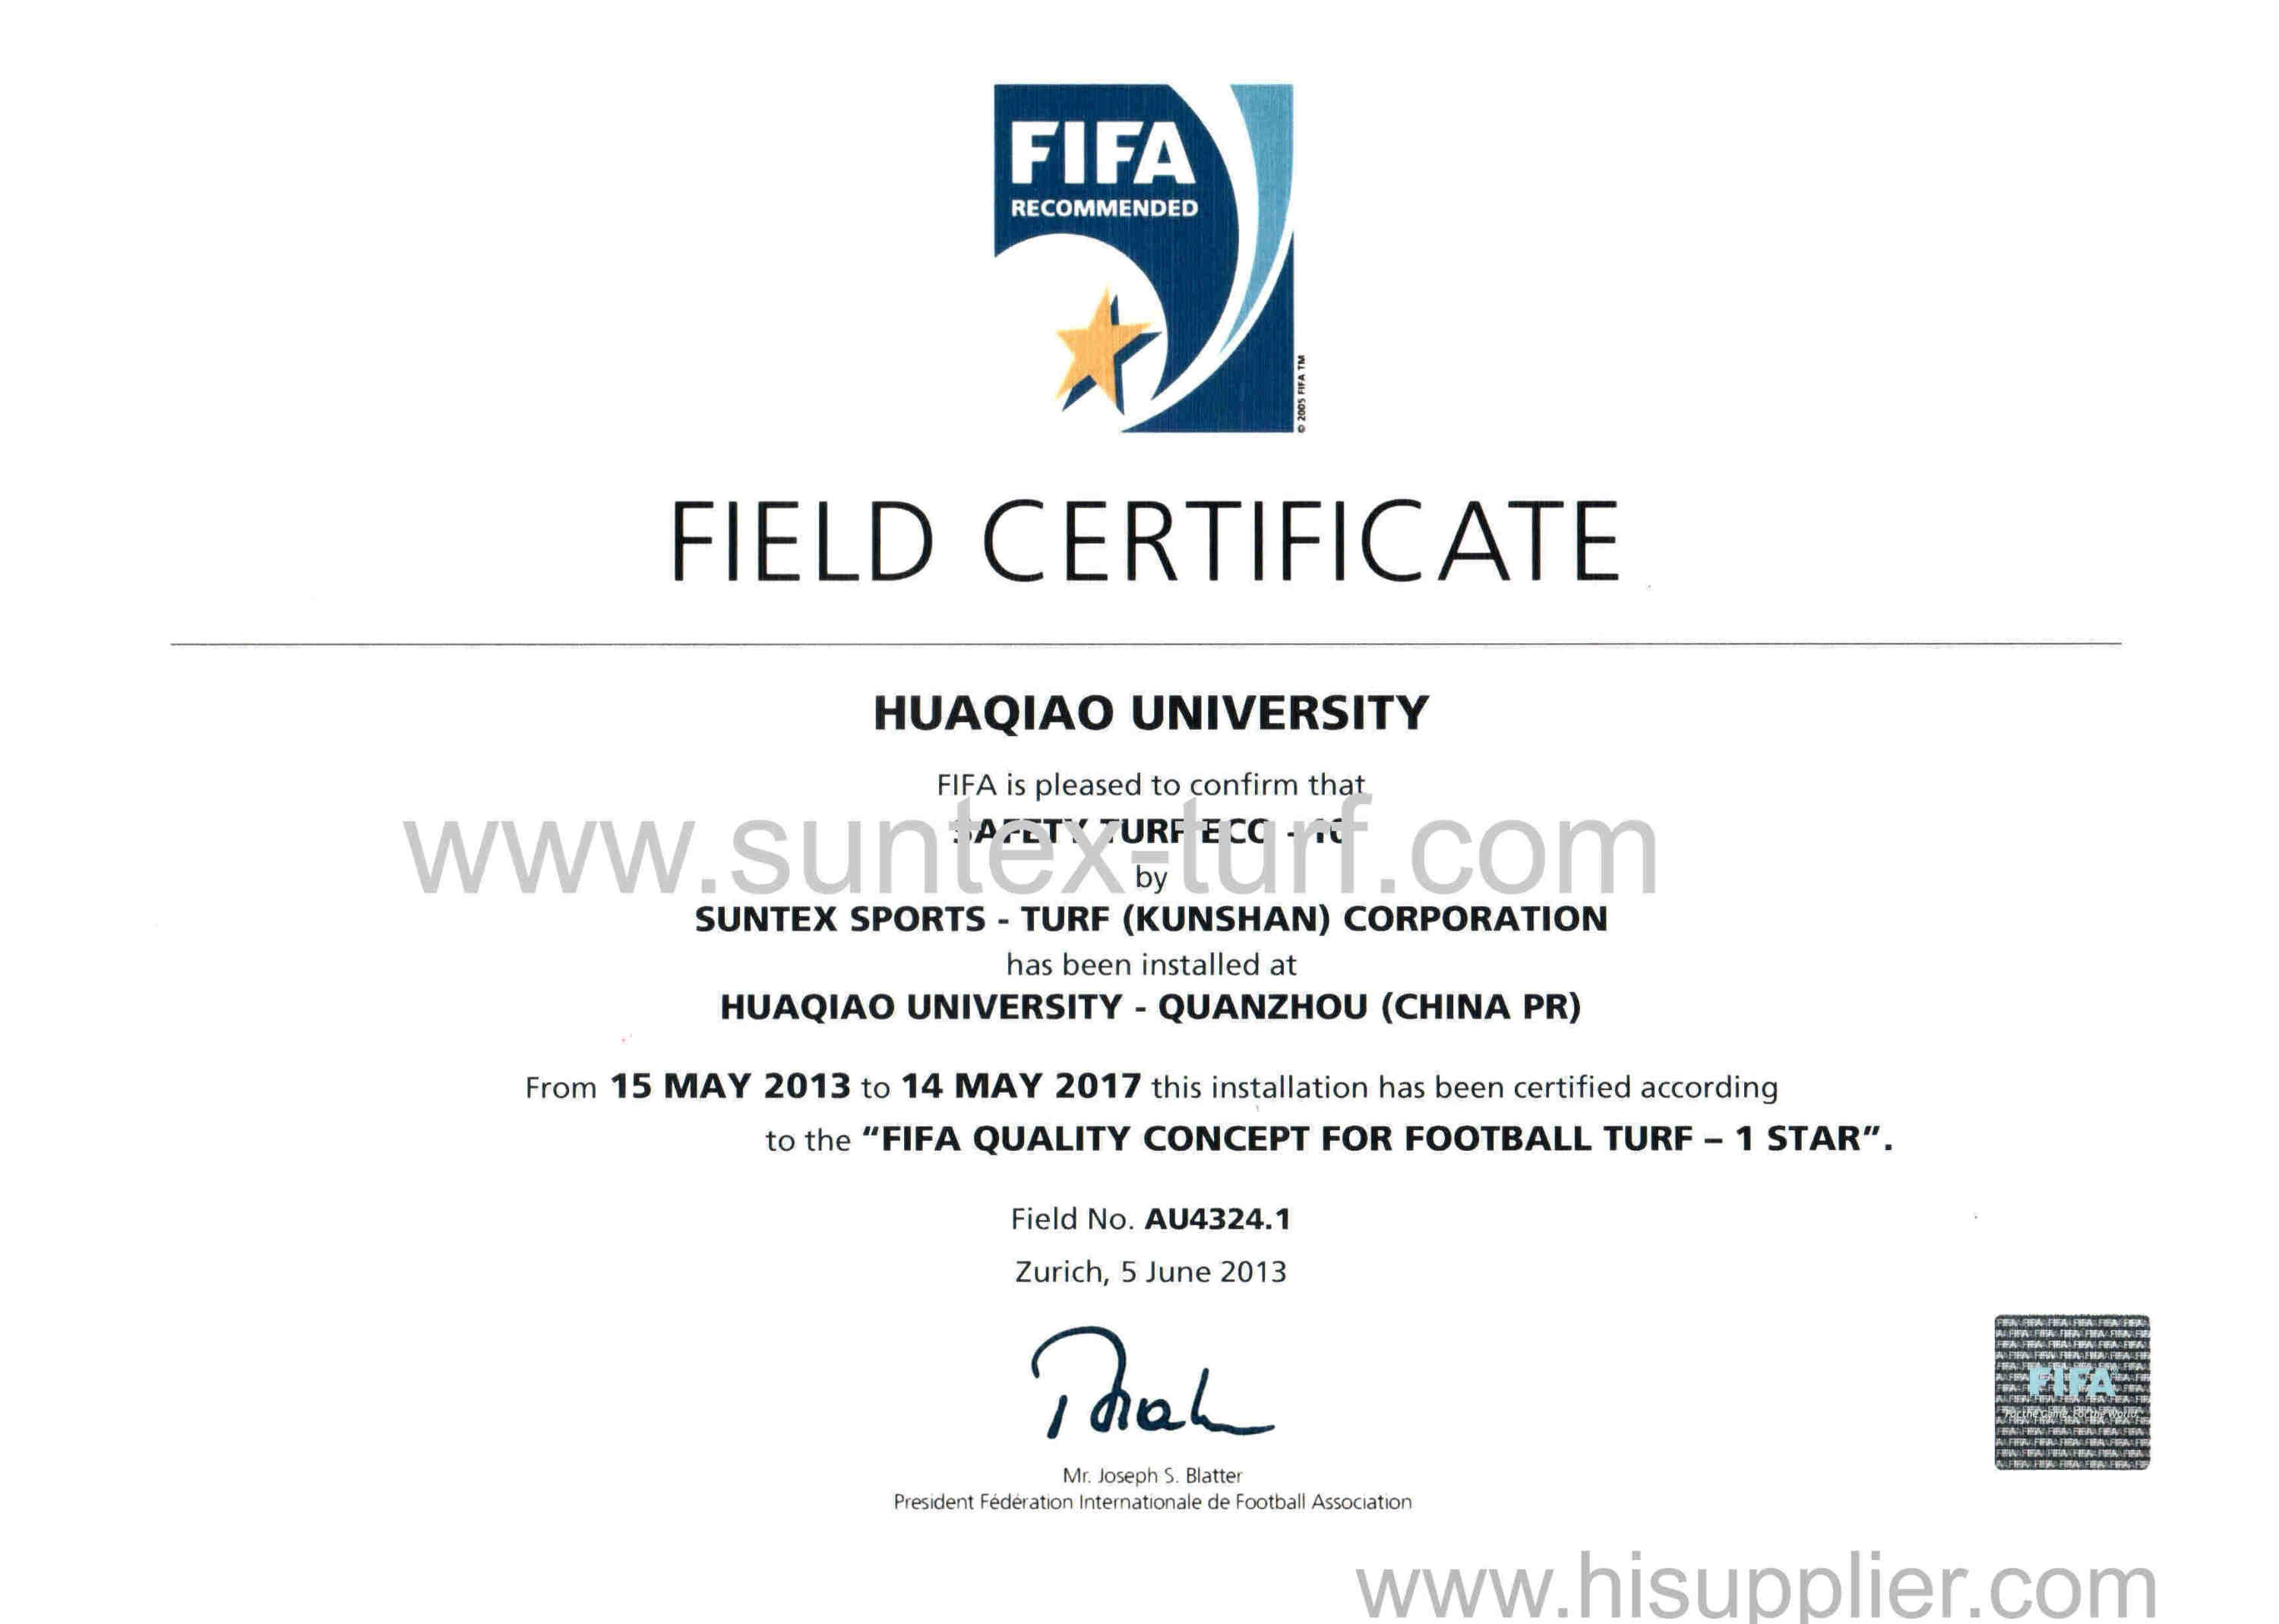 FIFA 1 star field certificate in Huaqiao University